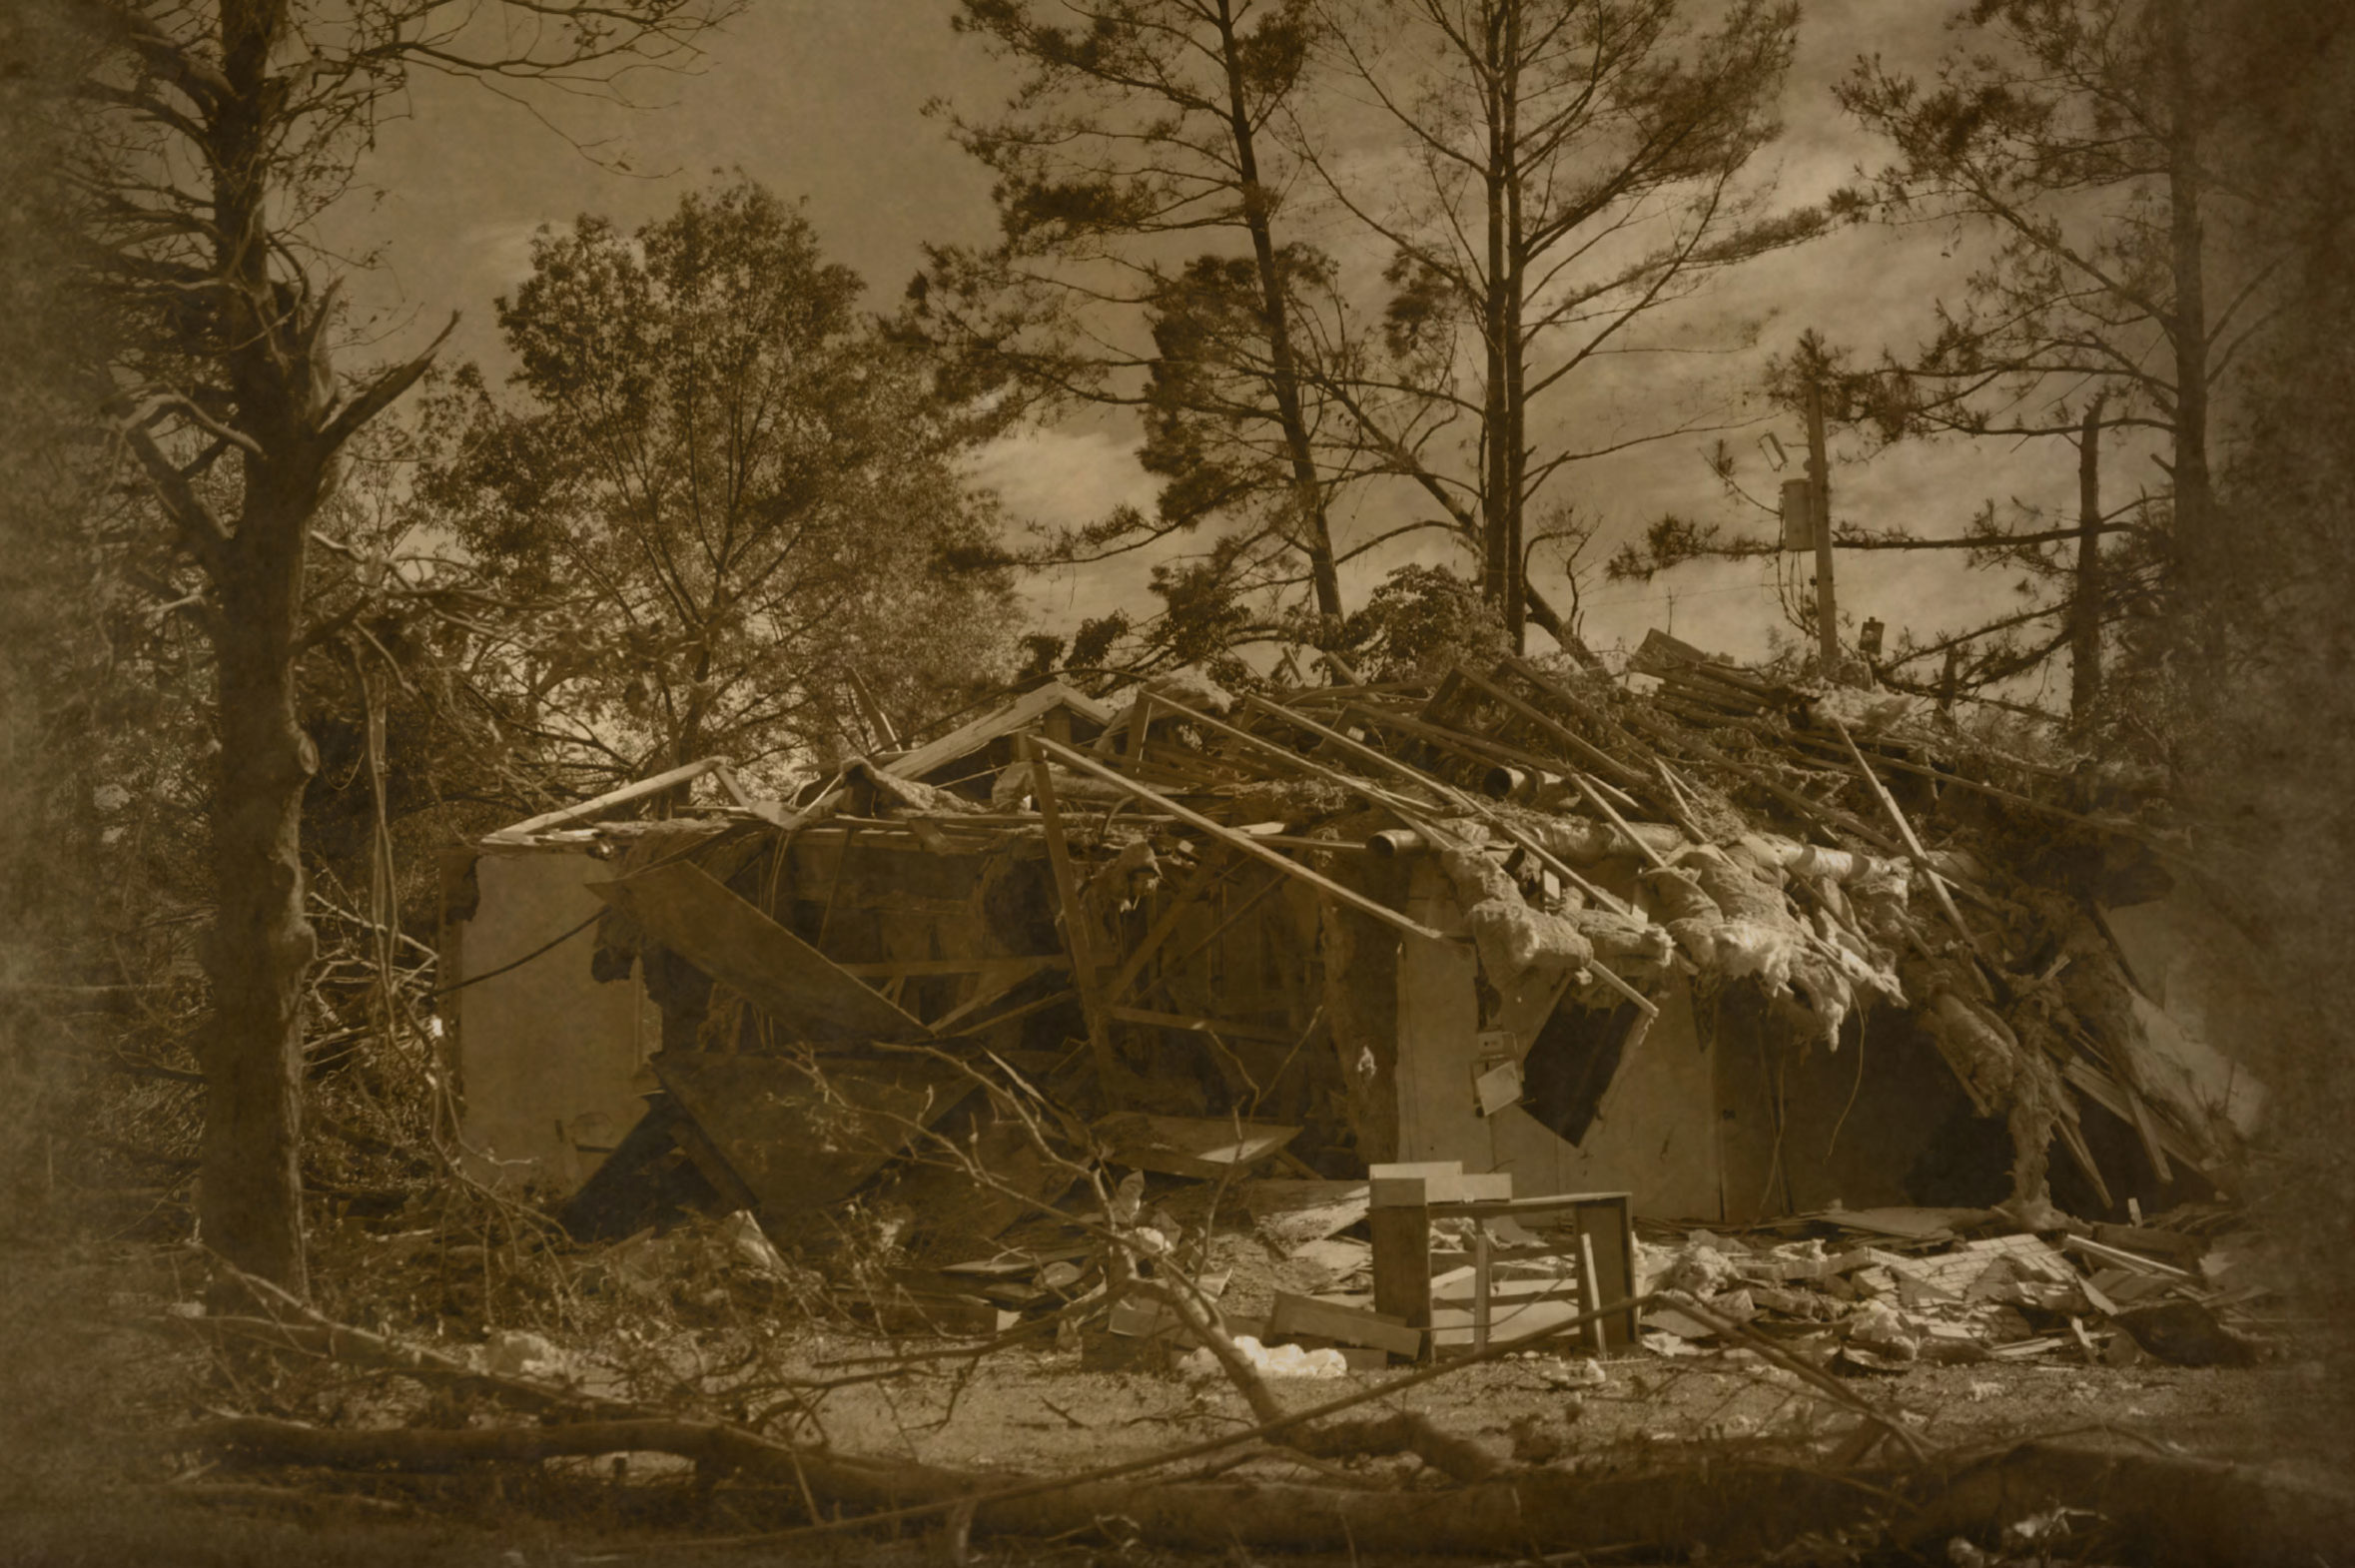 photo of a house destroyed by a tornado